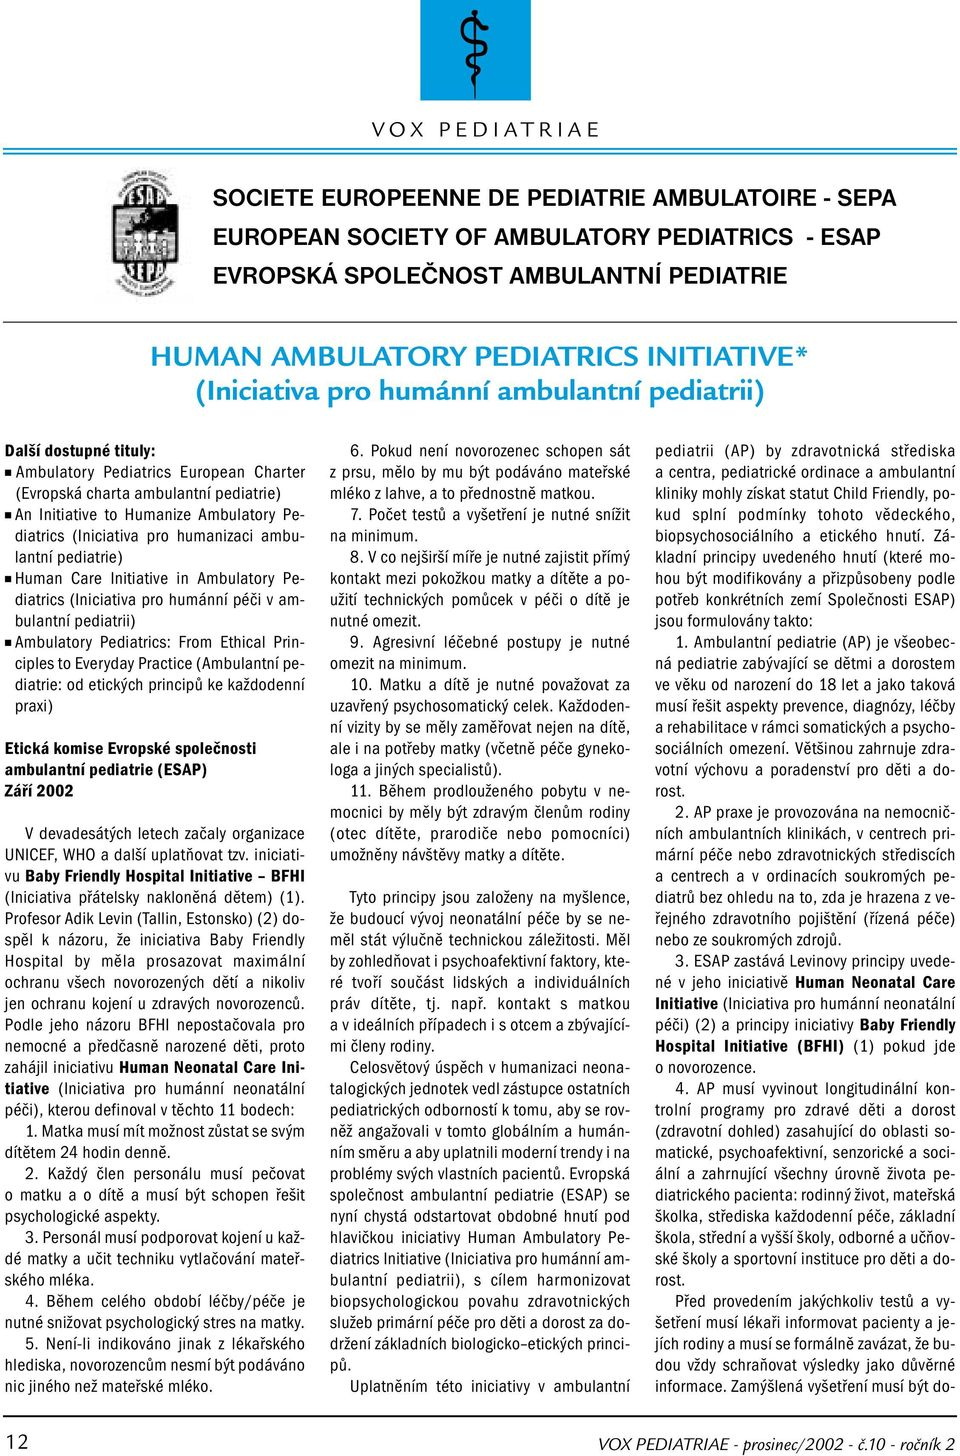 humanizaci ambulantní pediatrie) Human Care Initiative in Ambulatory Pediatrics (Iniciativa pro humánní péči v ambulantní pediatrii) Ambulatory Pediatrics: From Ethical Principles to Everyday